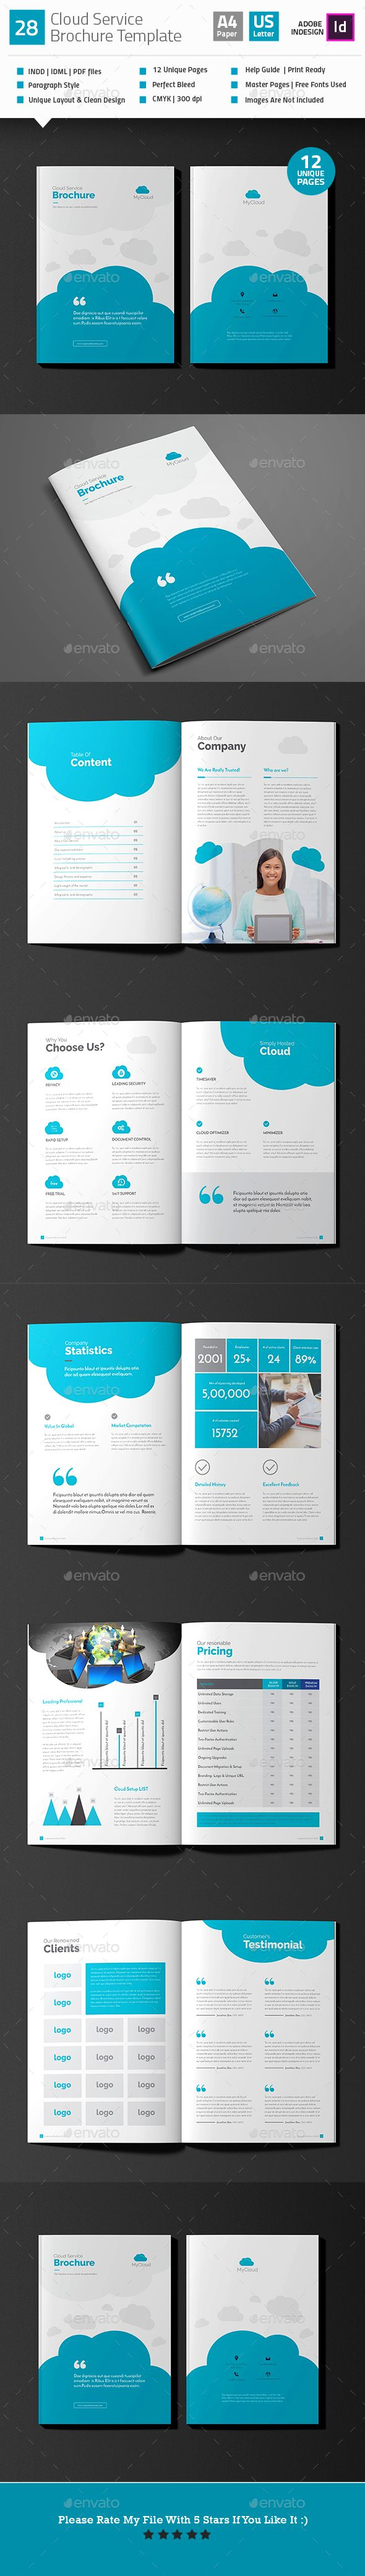 service brochure template - Kardas.klmphotography.co